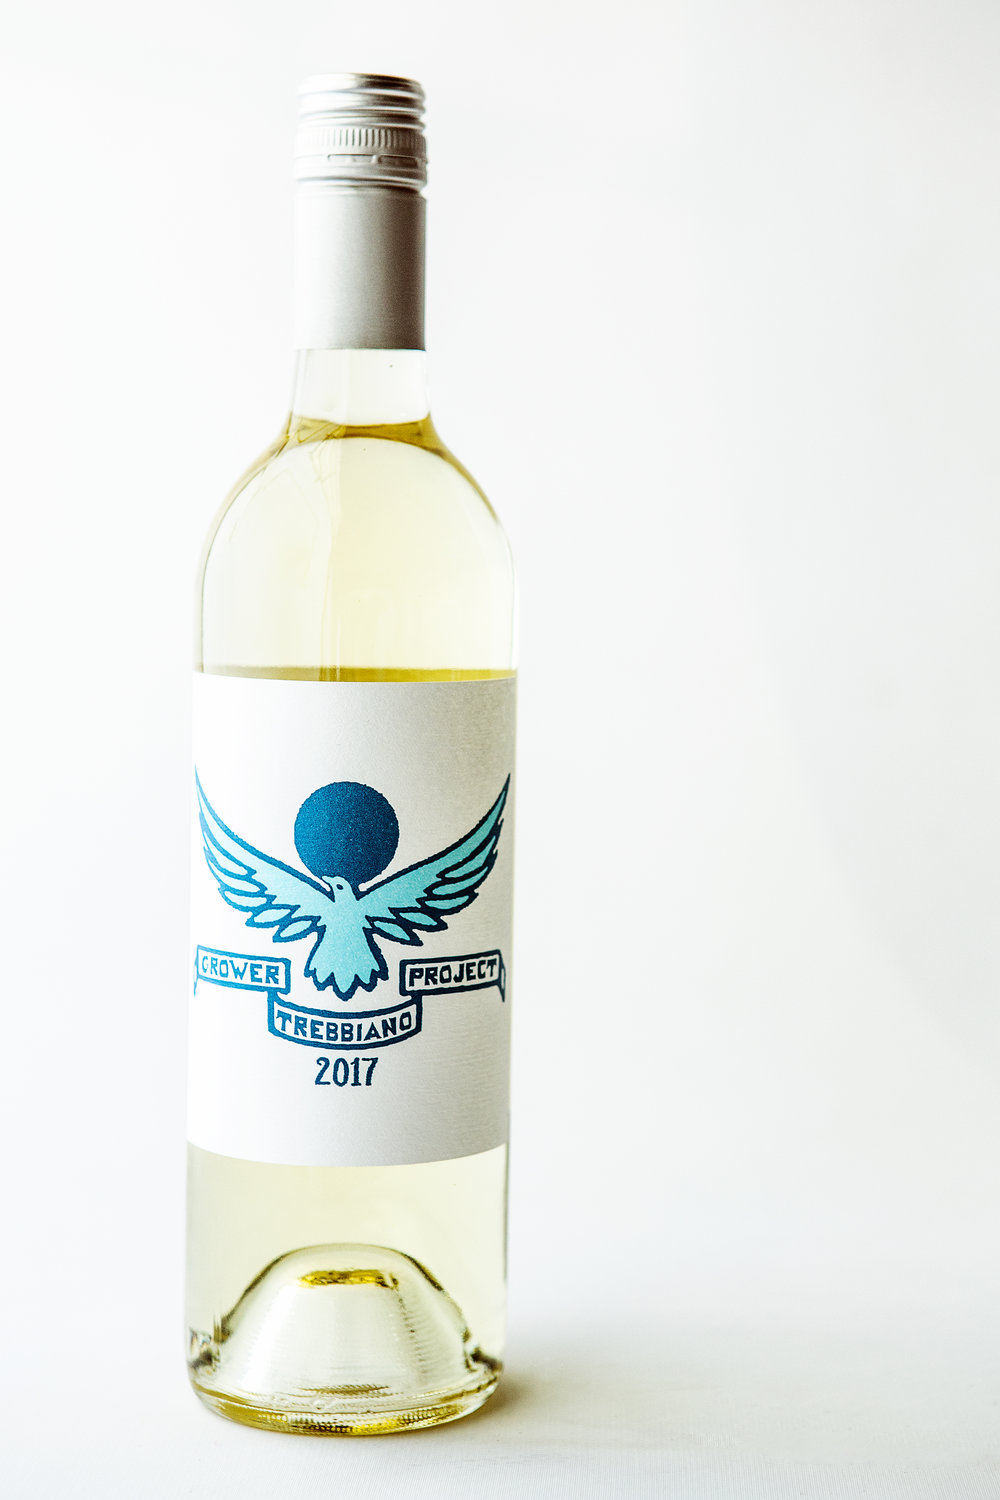 Grower Project Trebbiano Wine For the People Texas.jpg